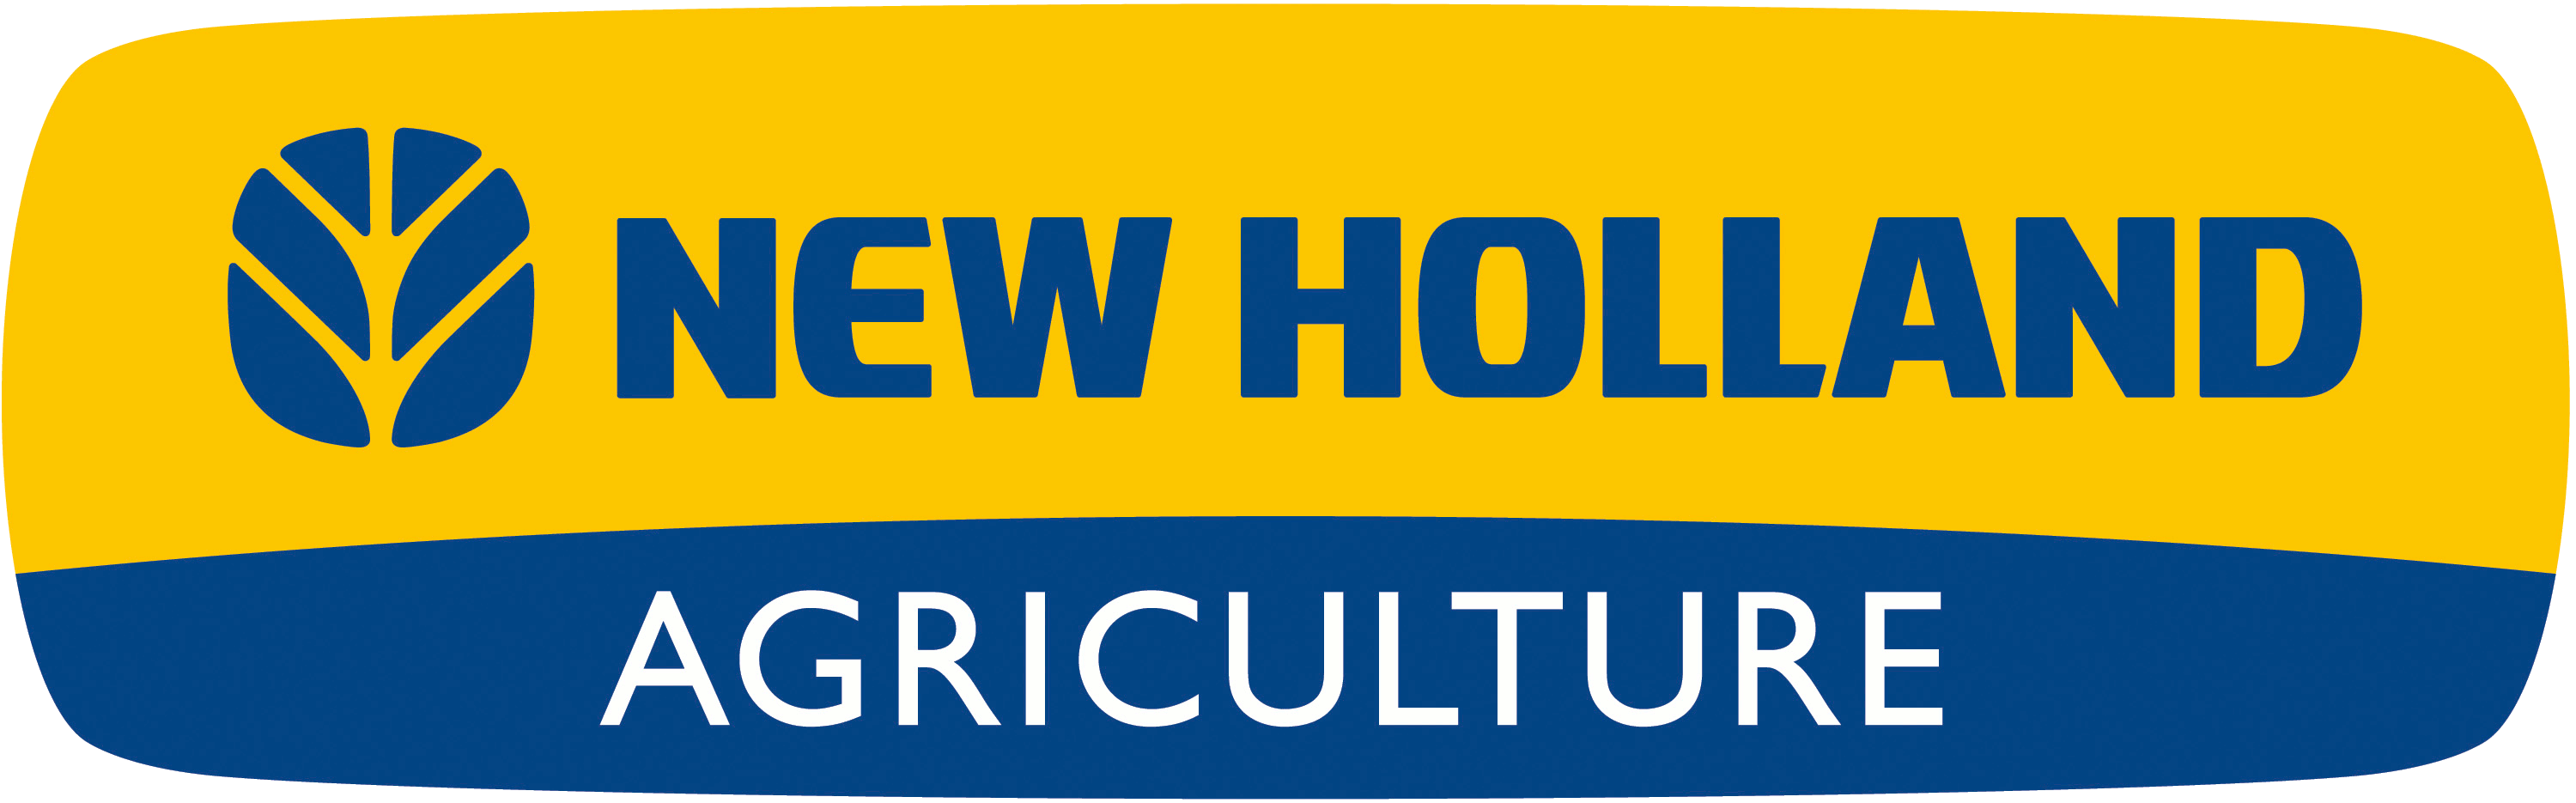 New Holland - Agriculture and forestry machinery.